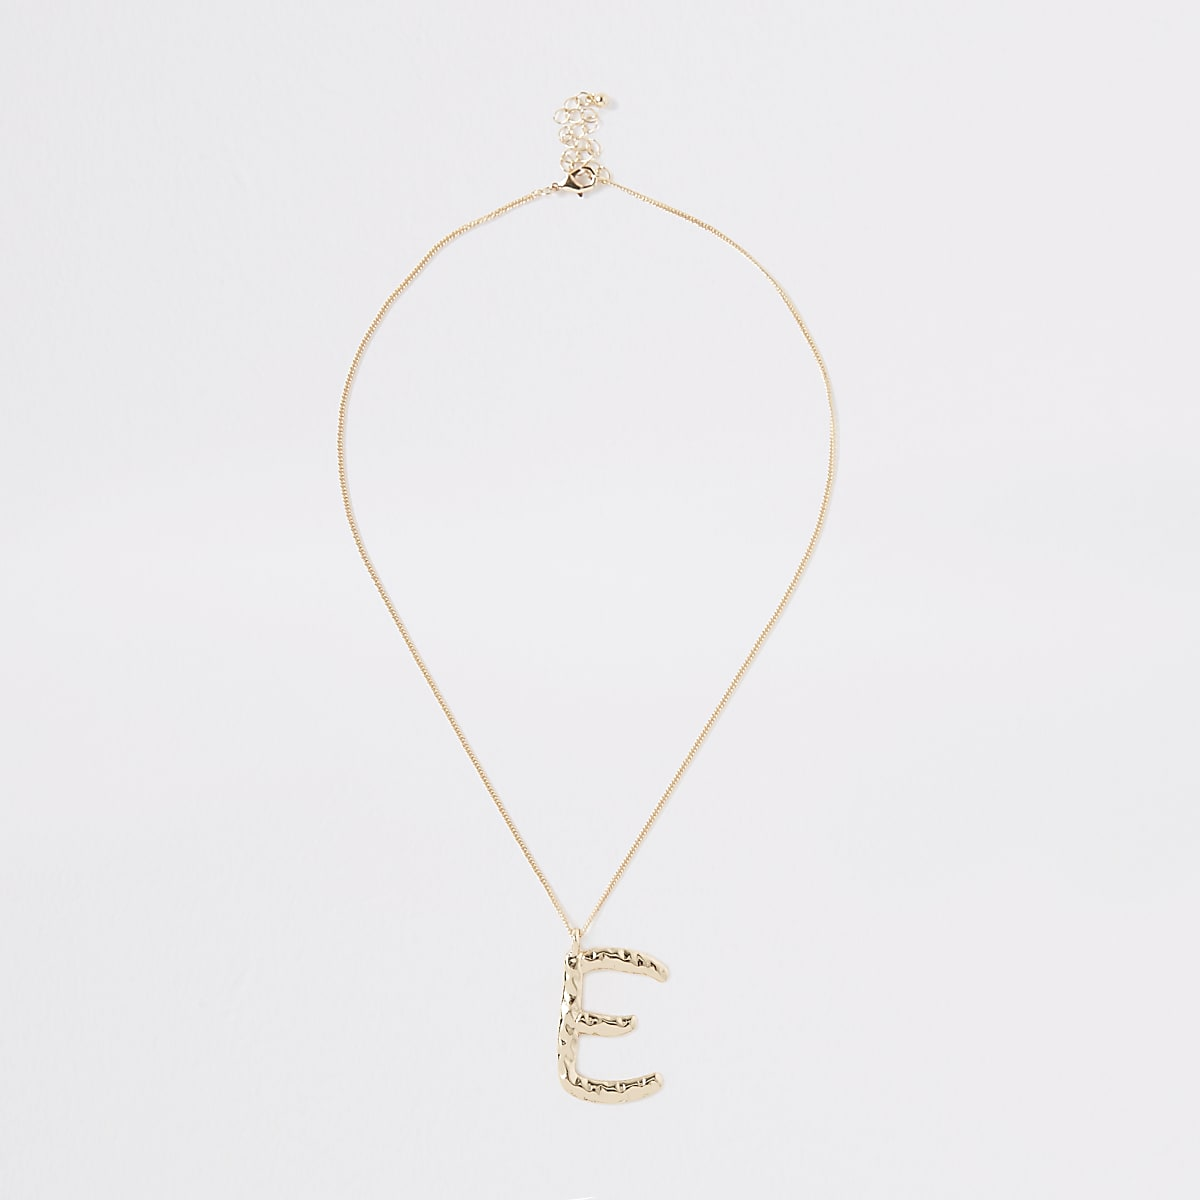 Gold colour large initial 'E' necklace